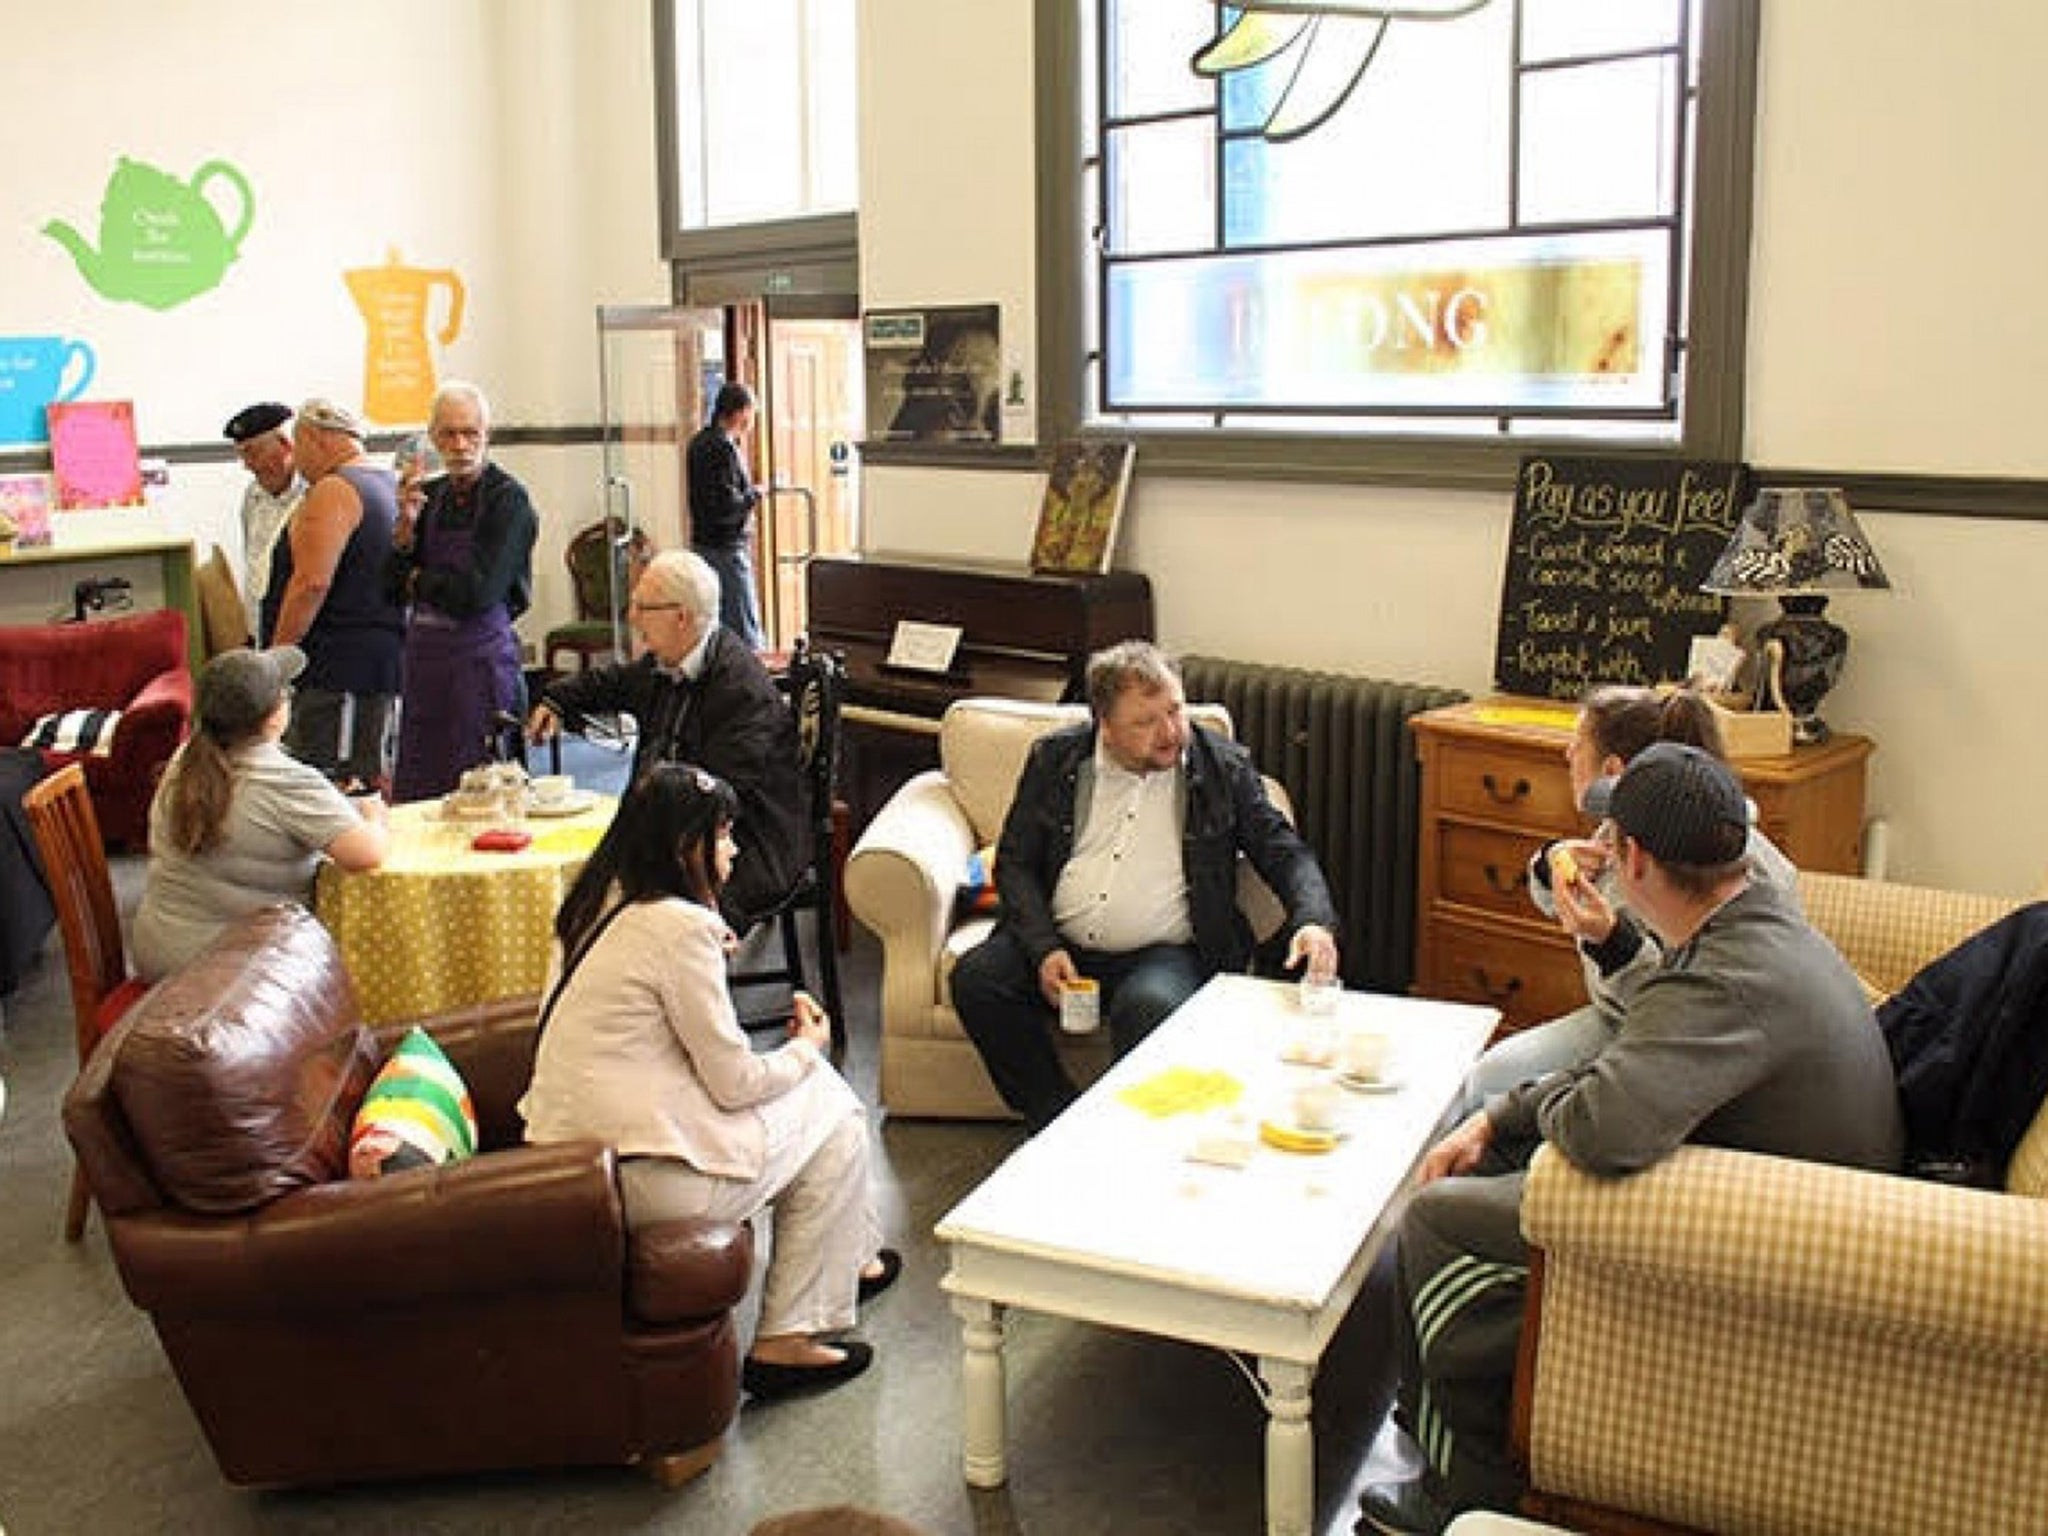 A living room in a library helps people through their - How do you say living room in spanish ...